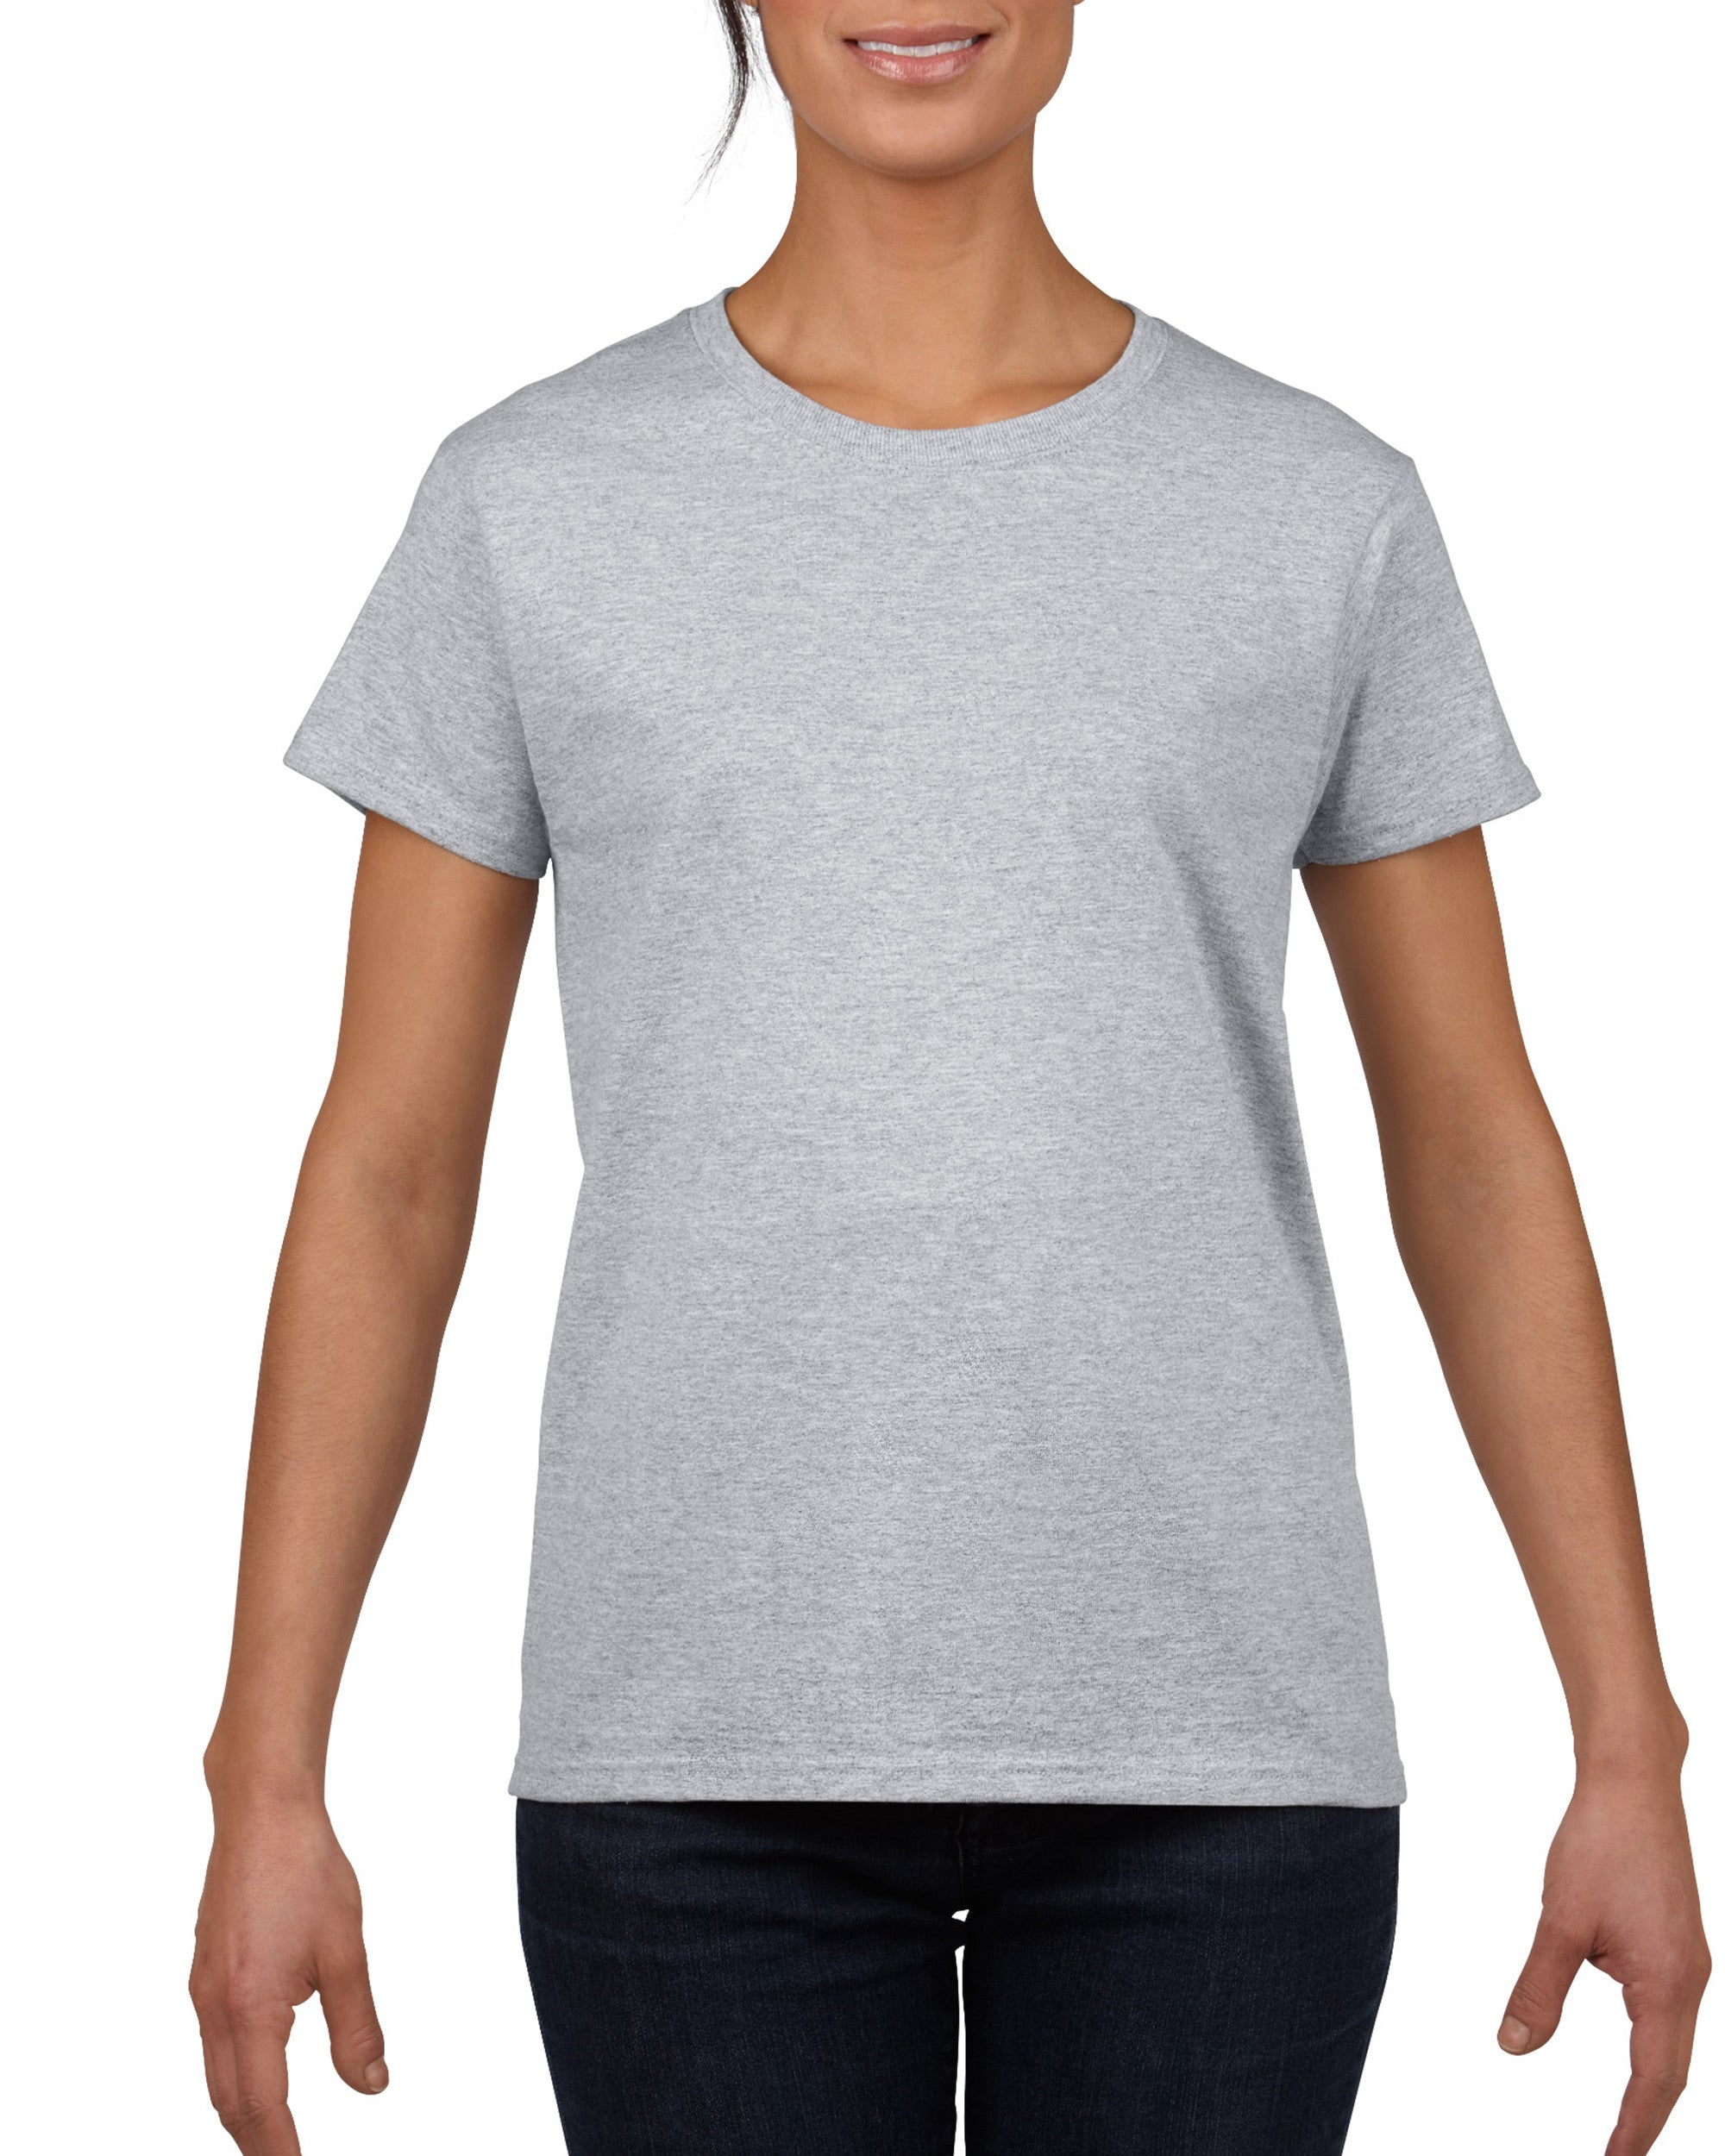 Create Your Own Cotton Women's T-Shirt